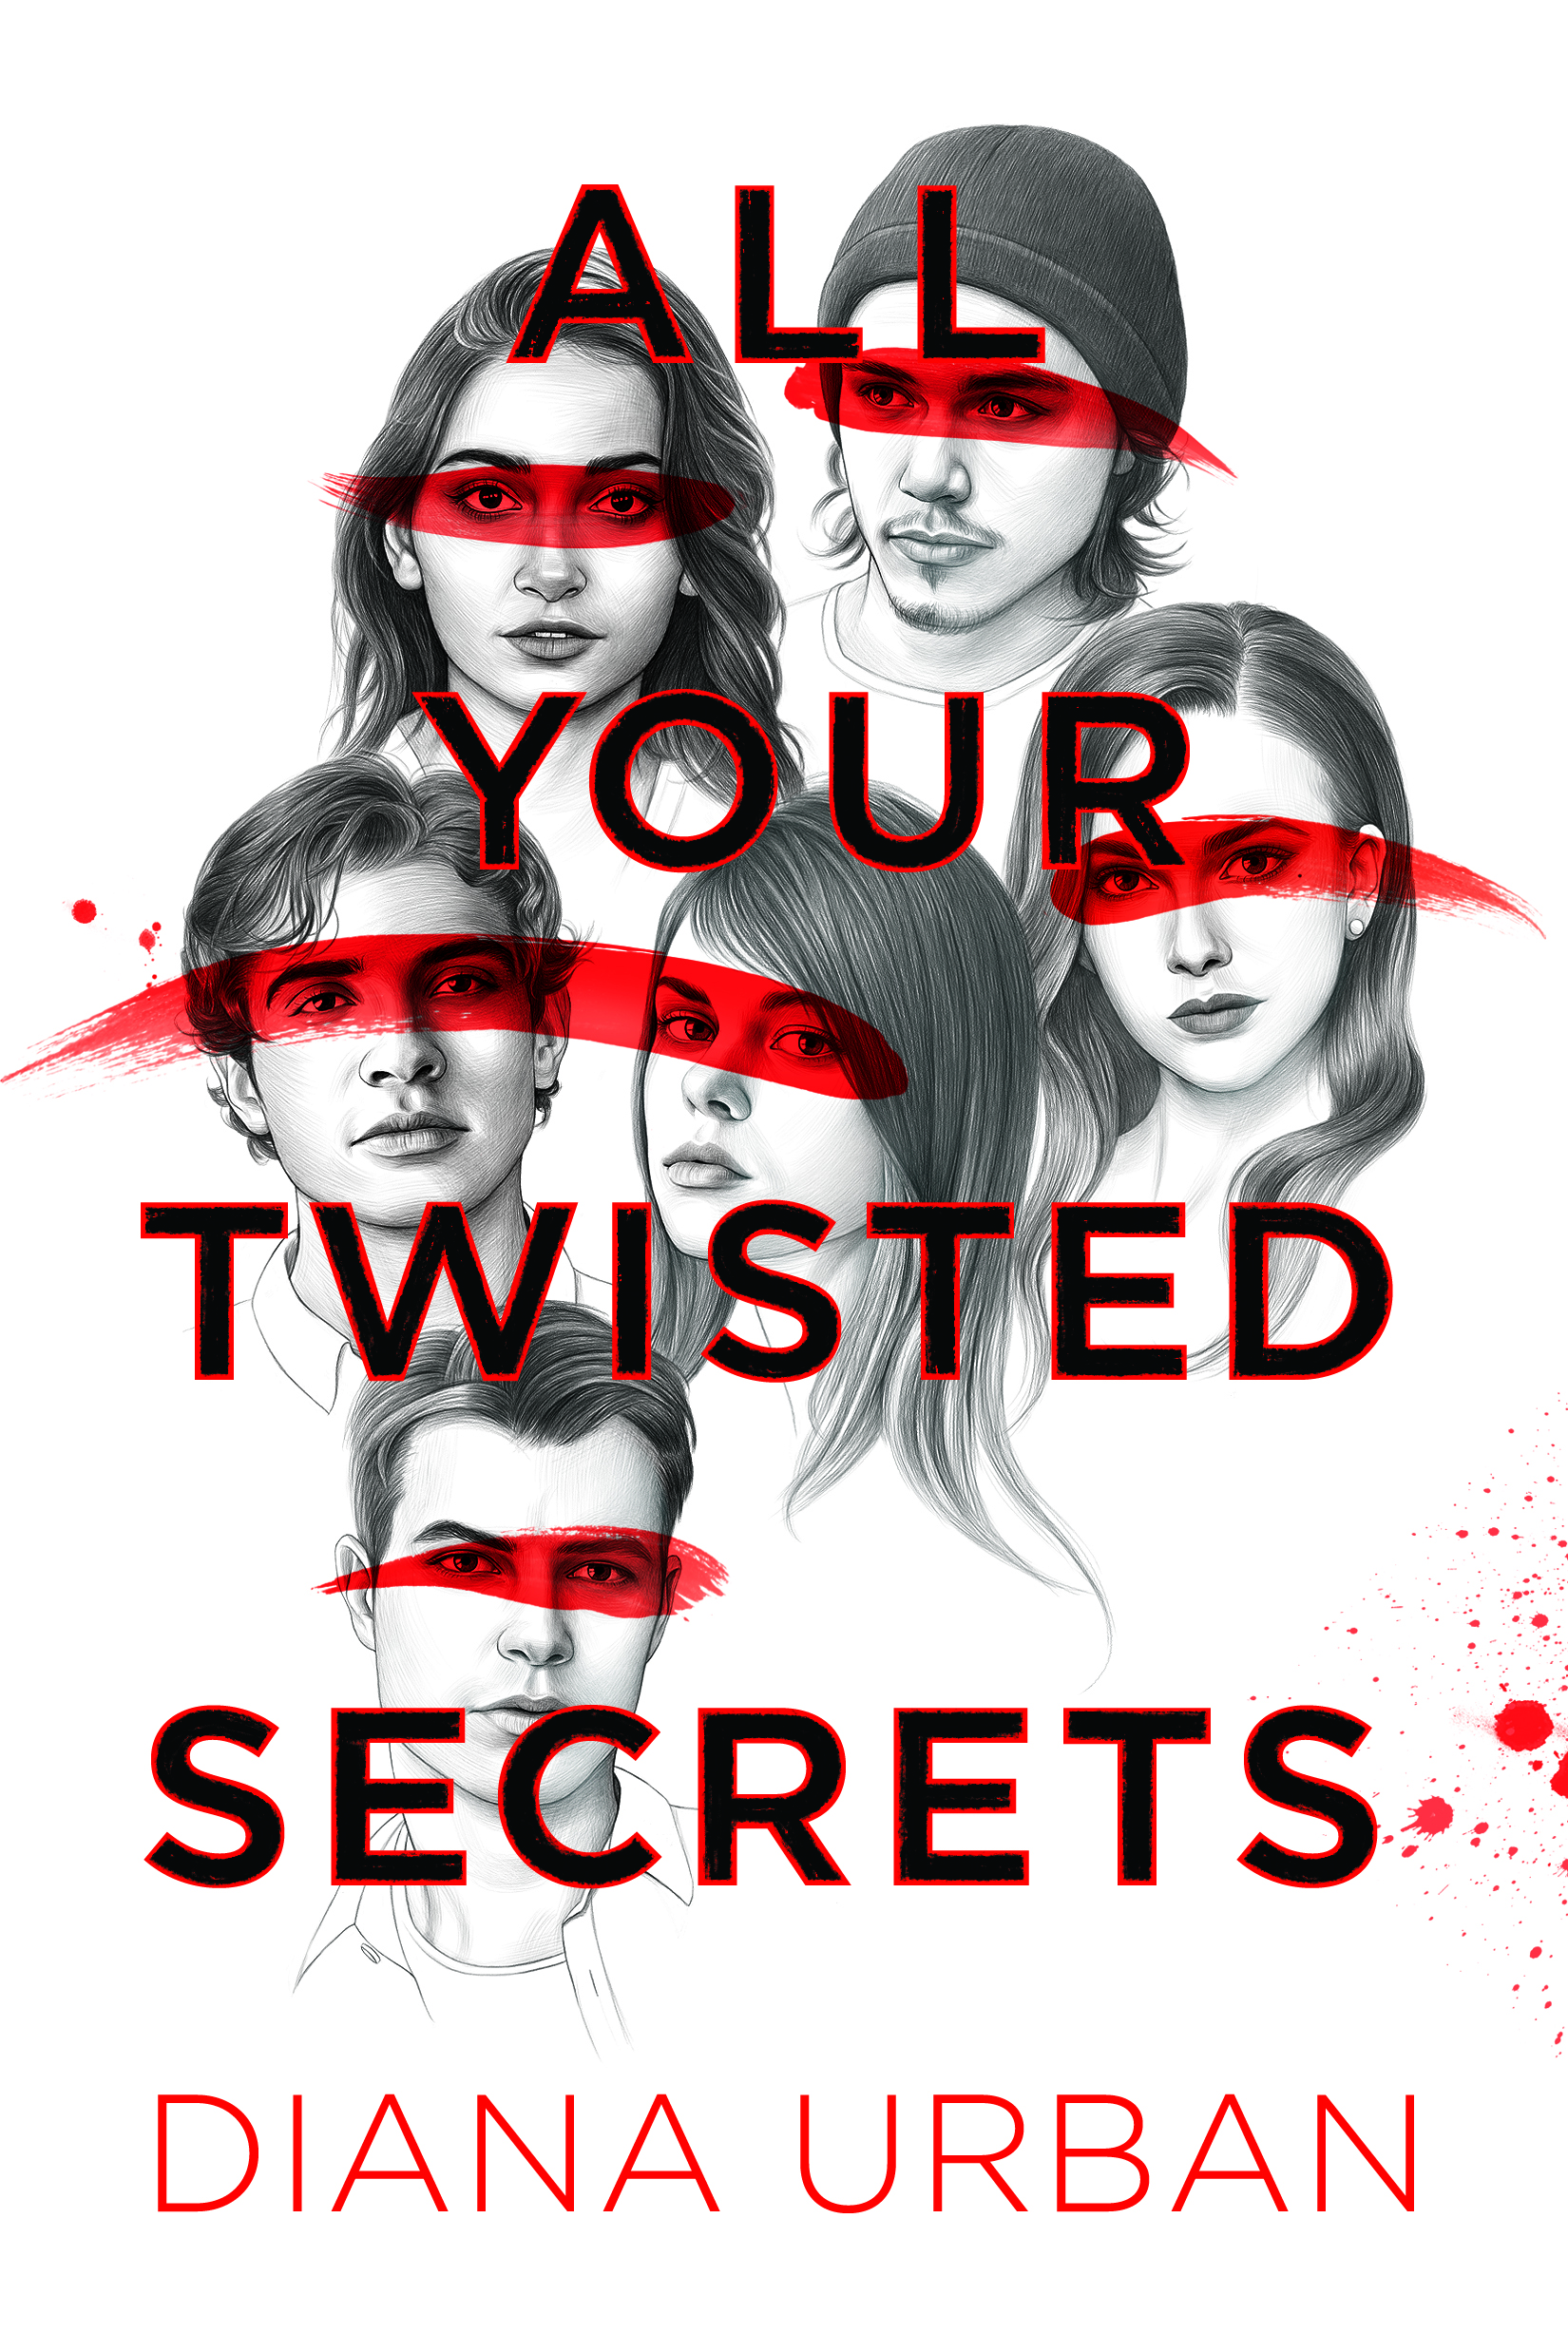 All Your Twisted Secrets by Diana Urban